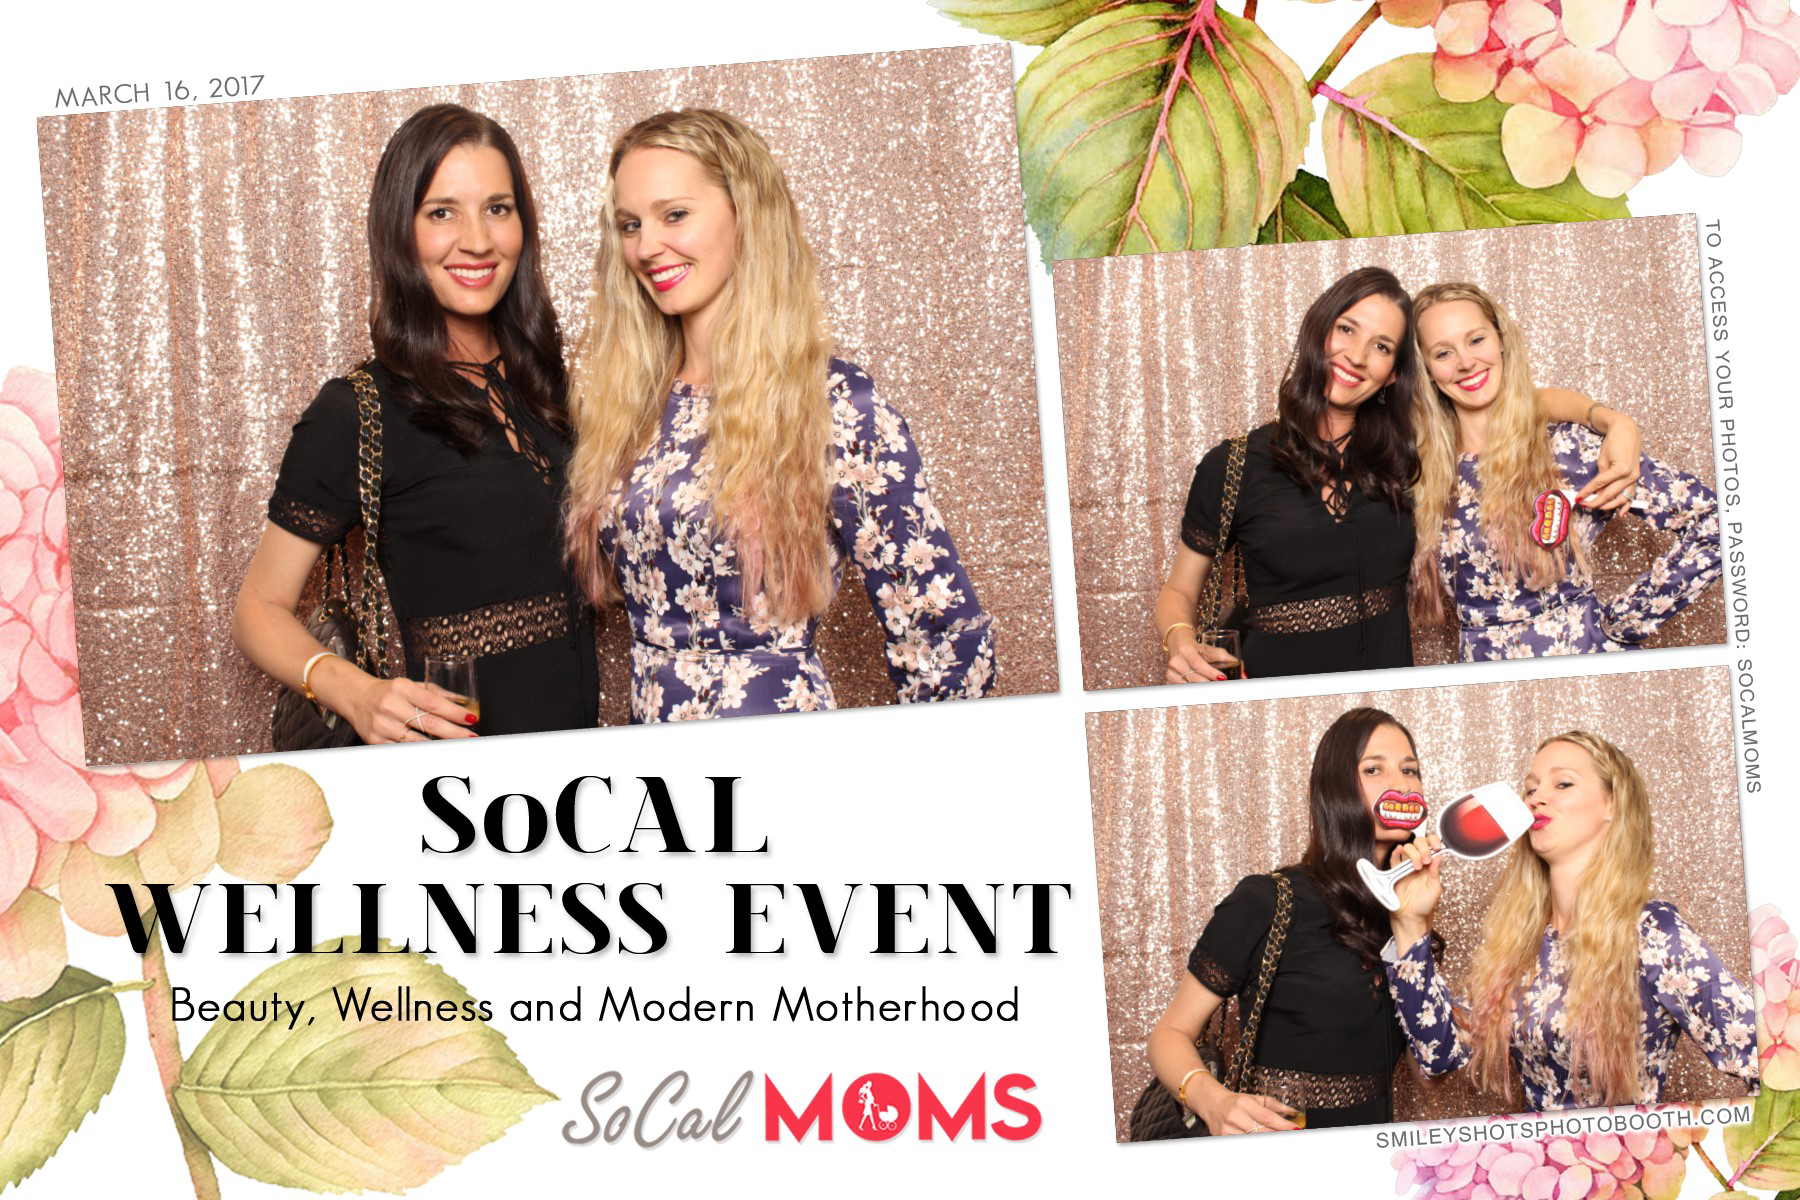 Socal Wellness Event Socal Moms Smiley Shots Photo Booth Photobooth (8).png